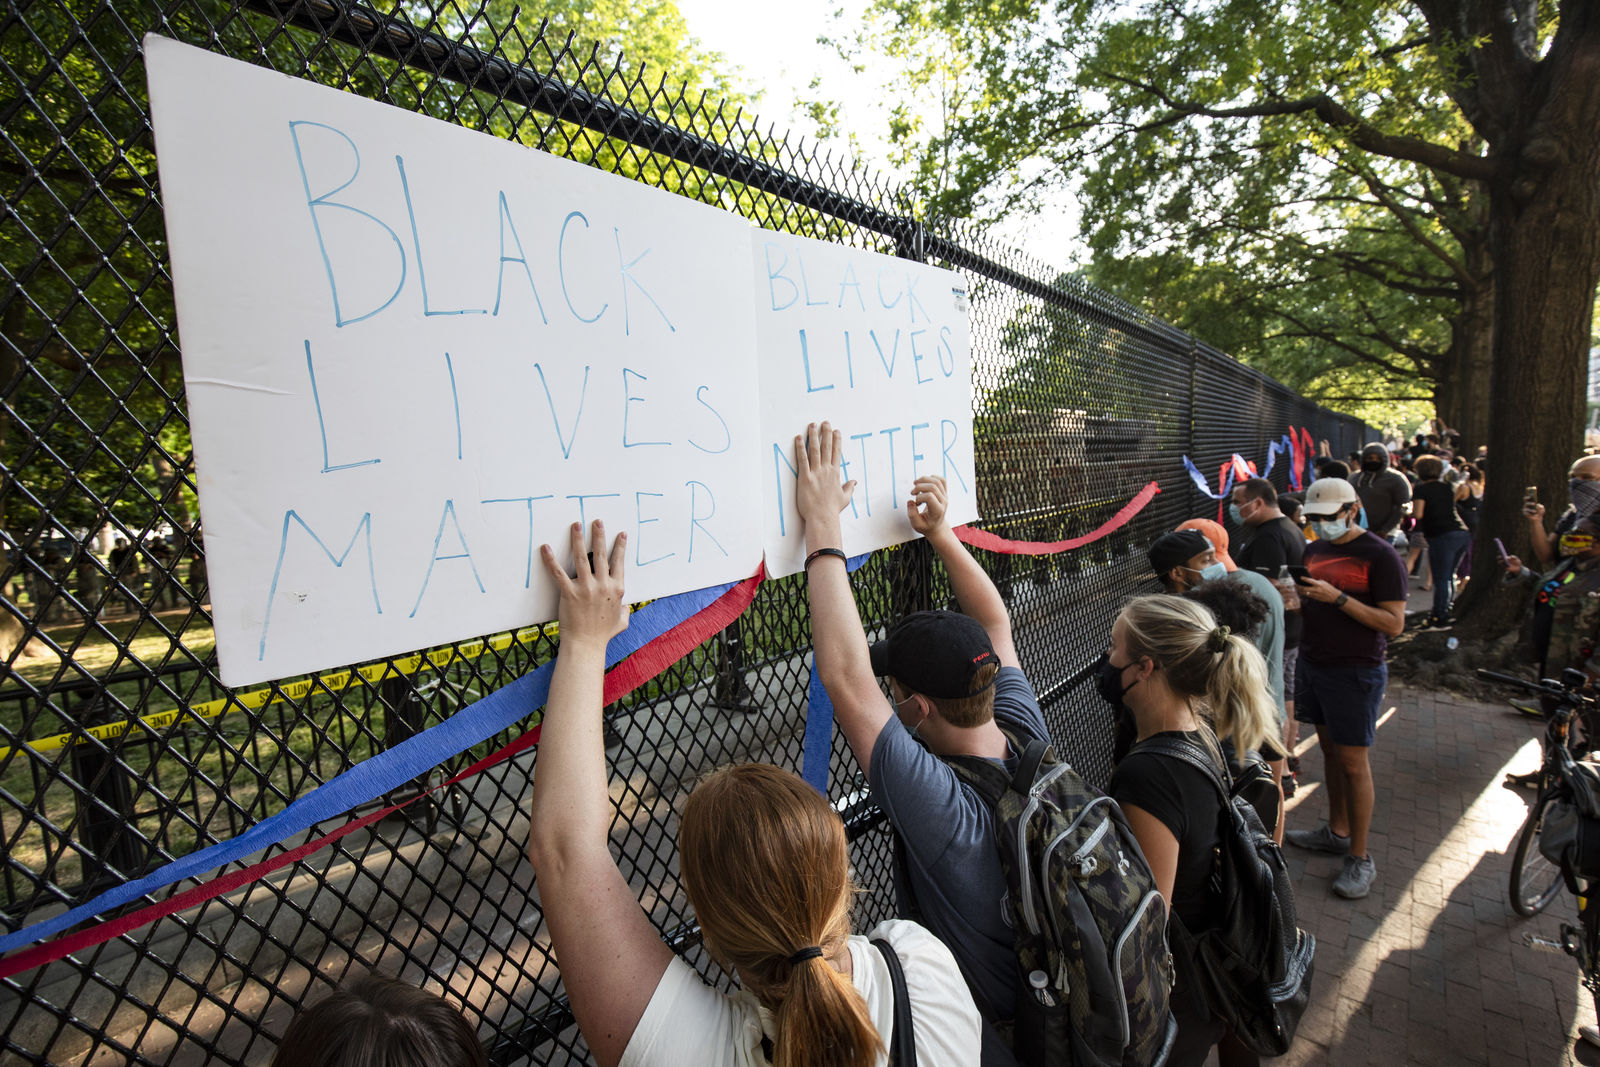 WASHINGTON, DC - JUNE 02: Protestors gather behind a fence across the street from the White House during a demonstration over the death of George Floyd, who died in police custody, on June 2, 2020 in Washington, DC. Protests erupted around the country following the release of a video showing Derek Chauvin, a now former Minneapolis Police officer, kneeling on the neck of Floyd despite Floyd saying I cant breath. (Photo by Samuel Corum/Getty Images)